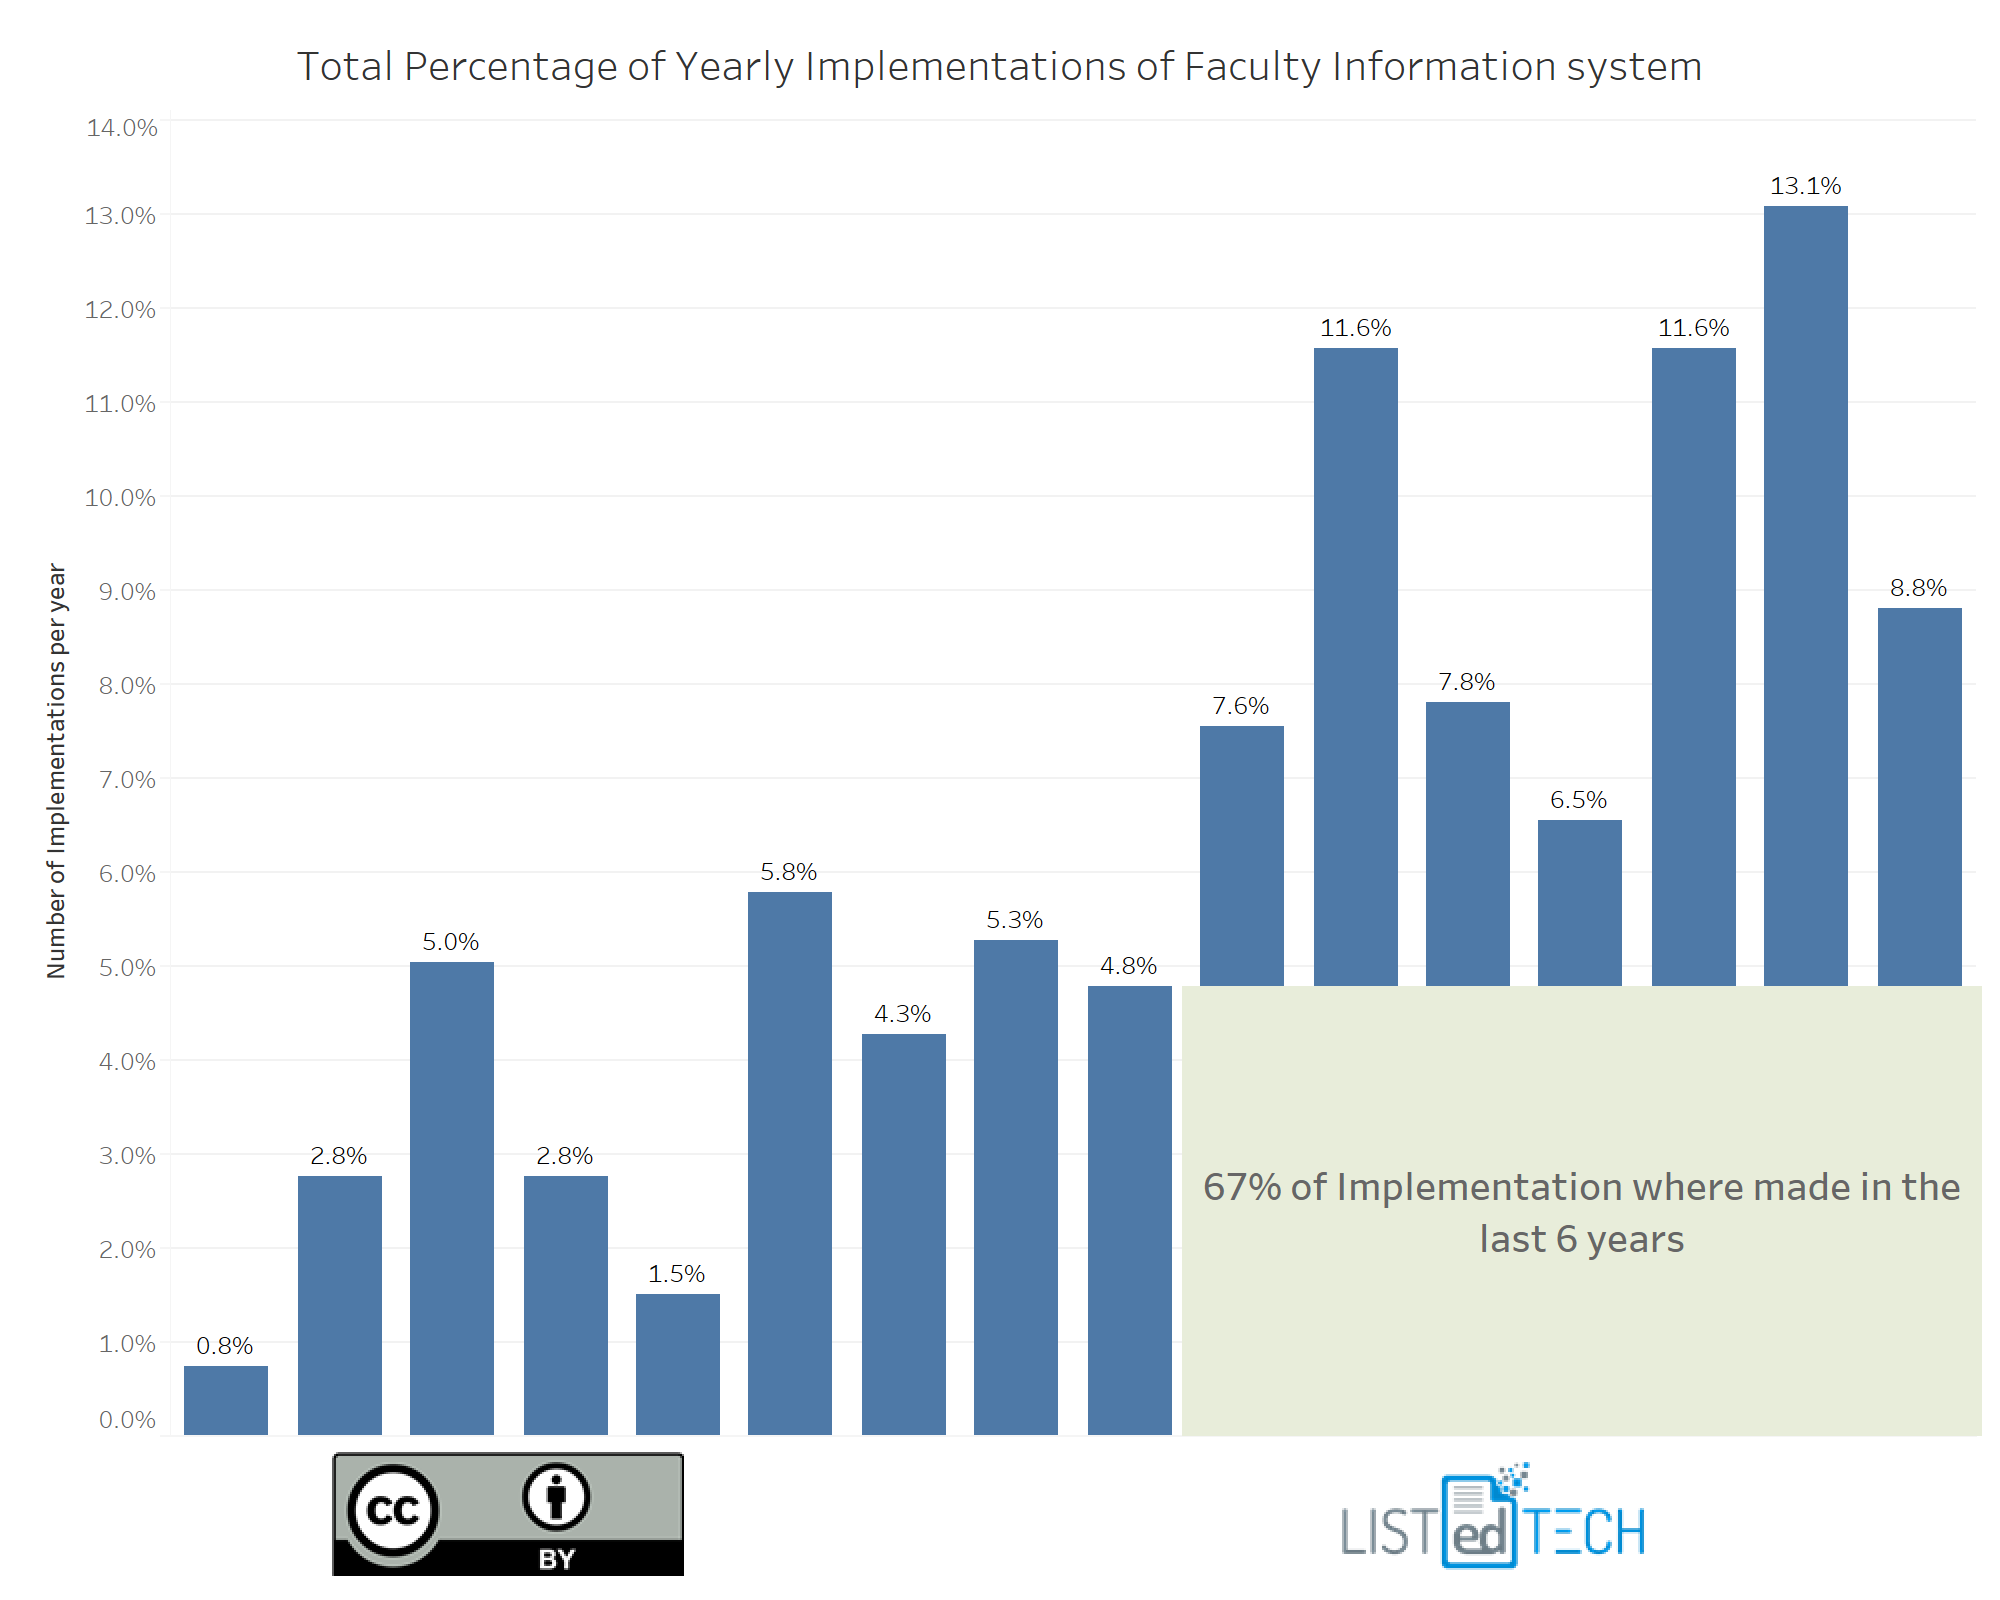 New implementations Faculty Information Systems - LisTedTECH